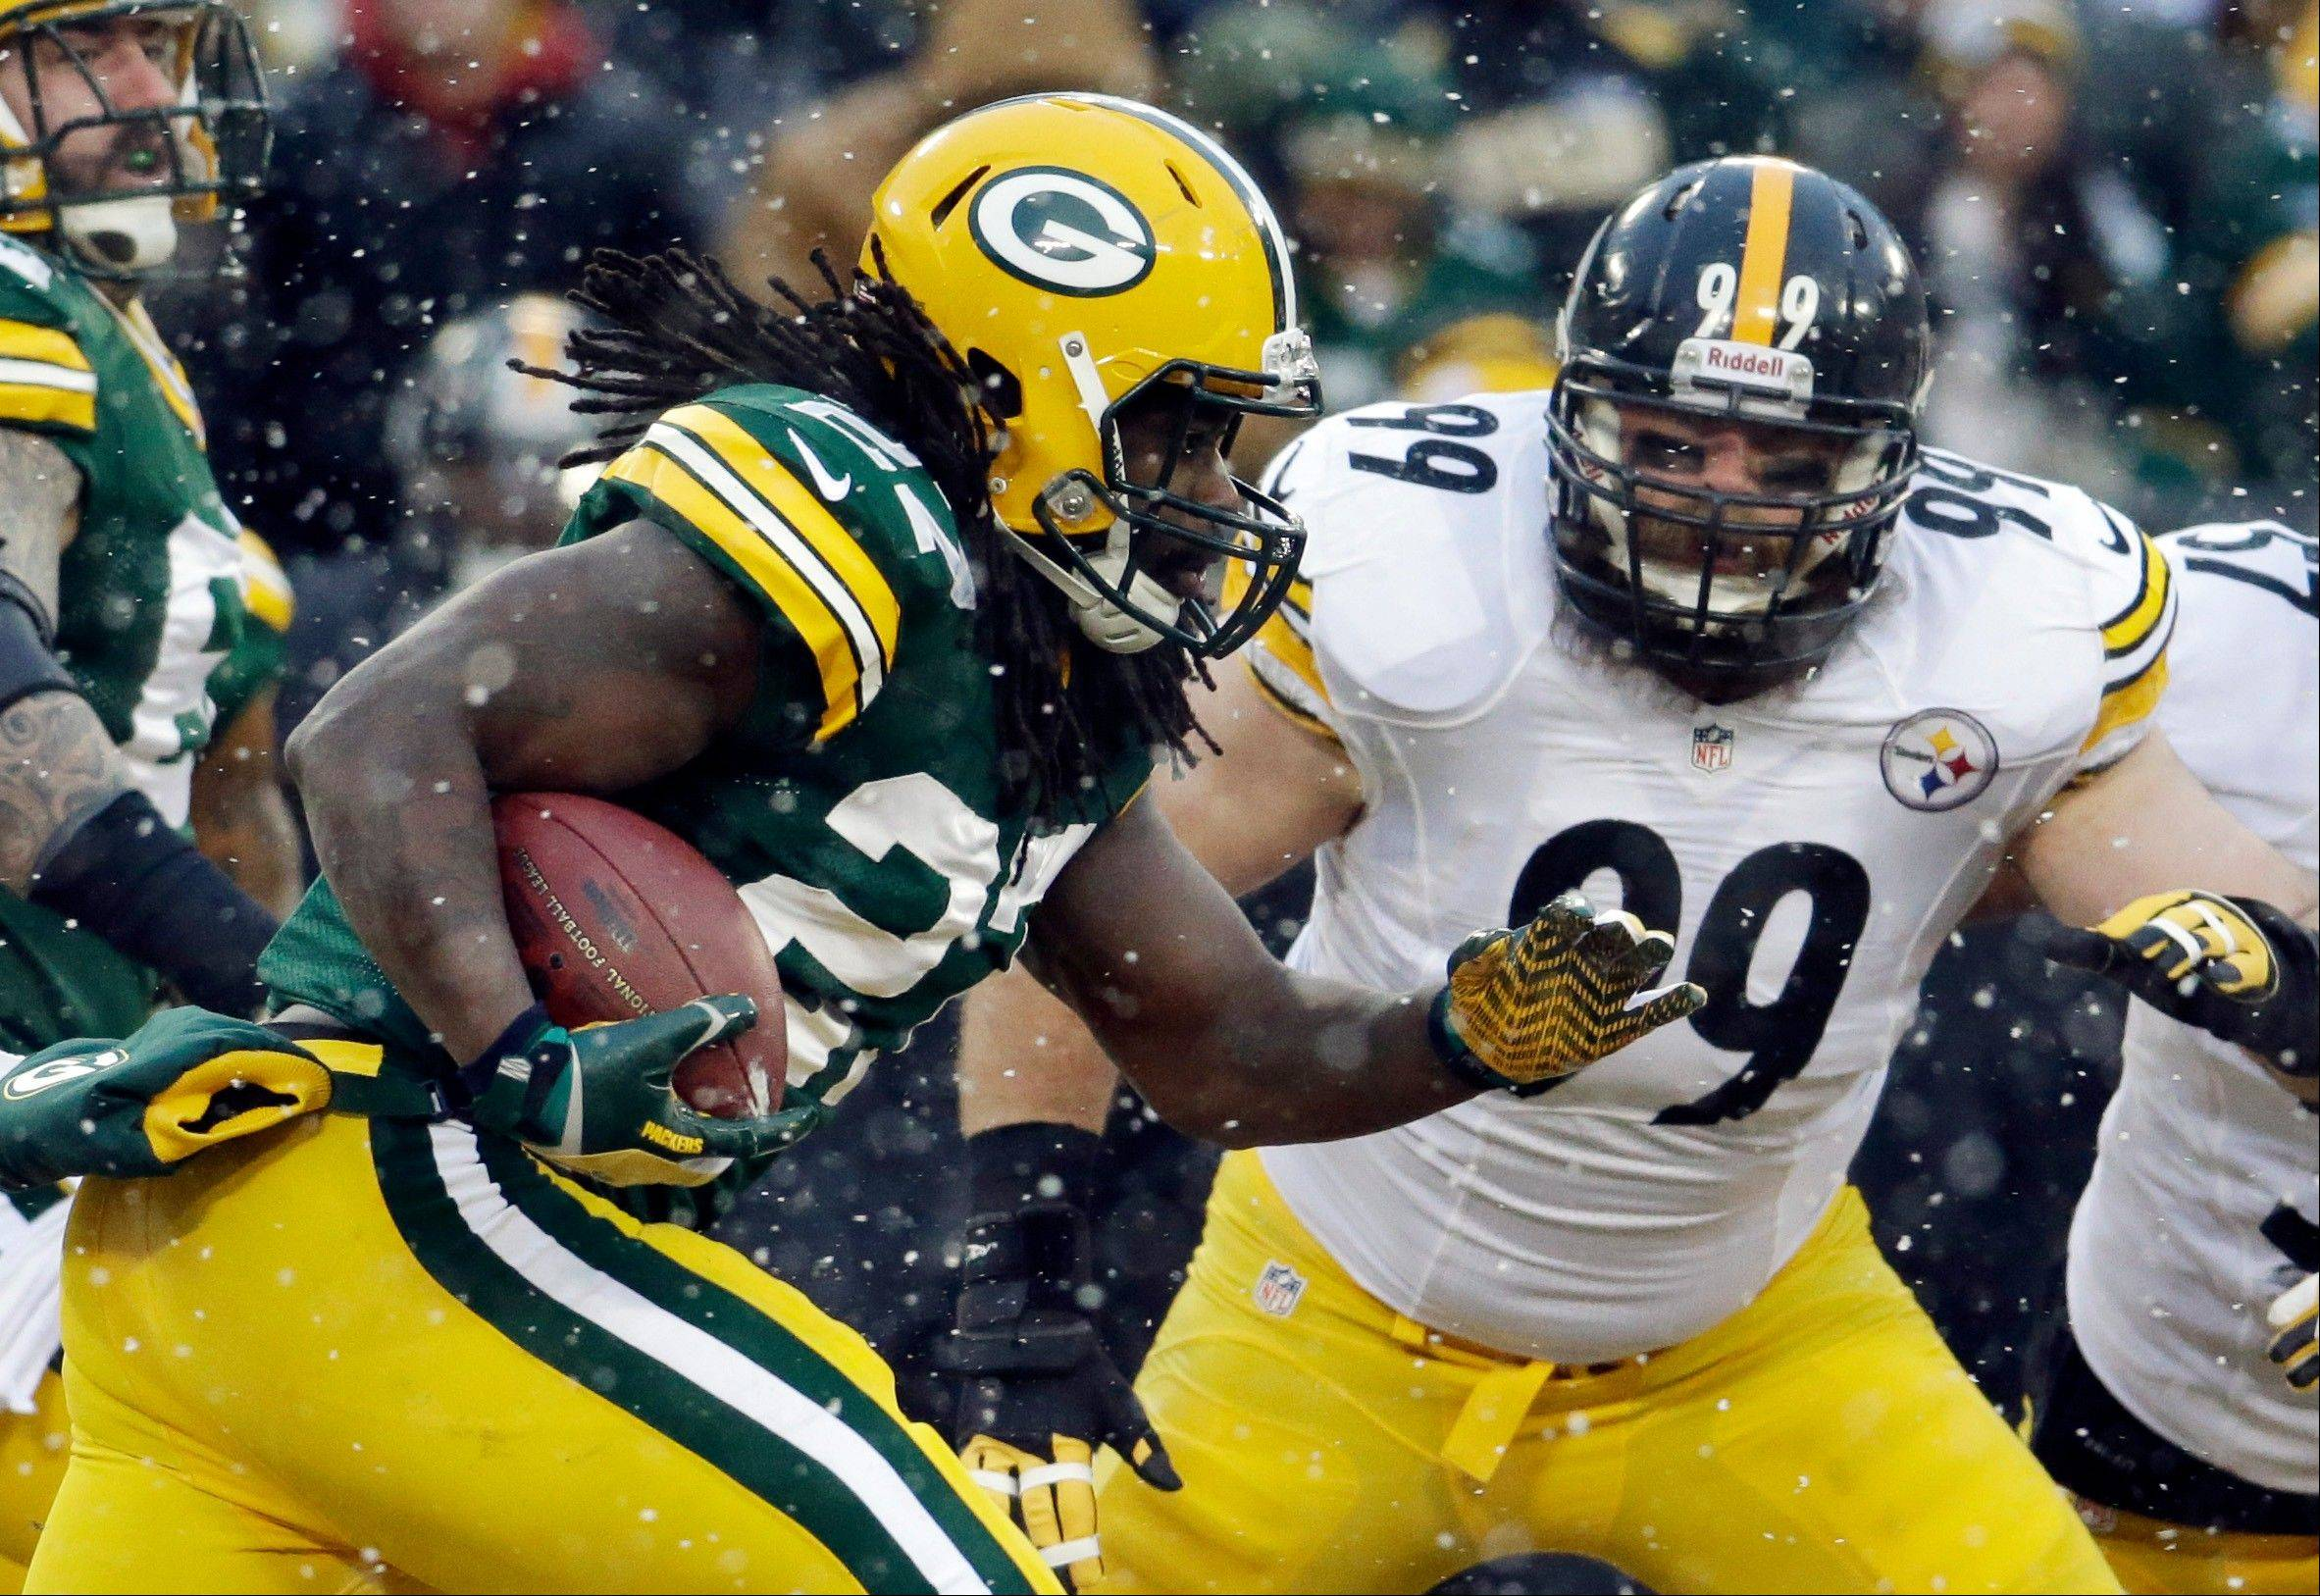 The Packers� Eddie Lacy, if he is able to play Sunday, could pose another big threat to the struggling Bears defense.